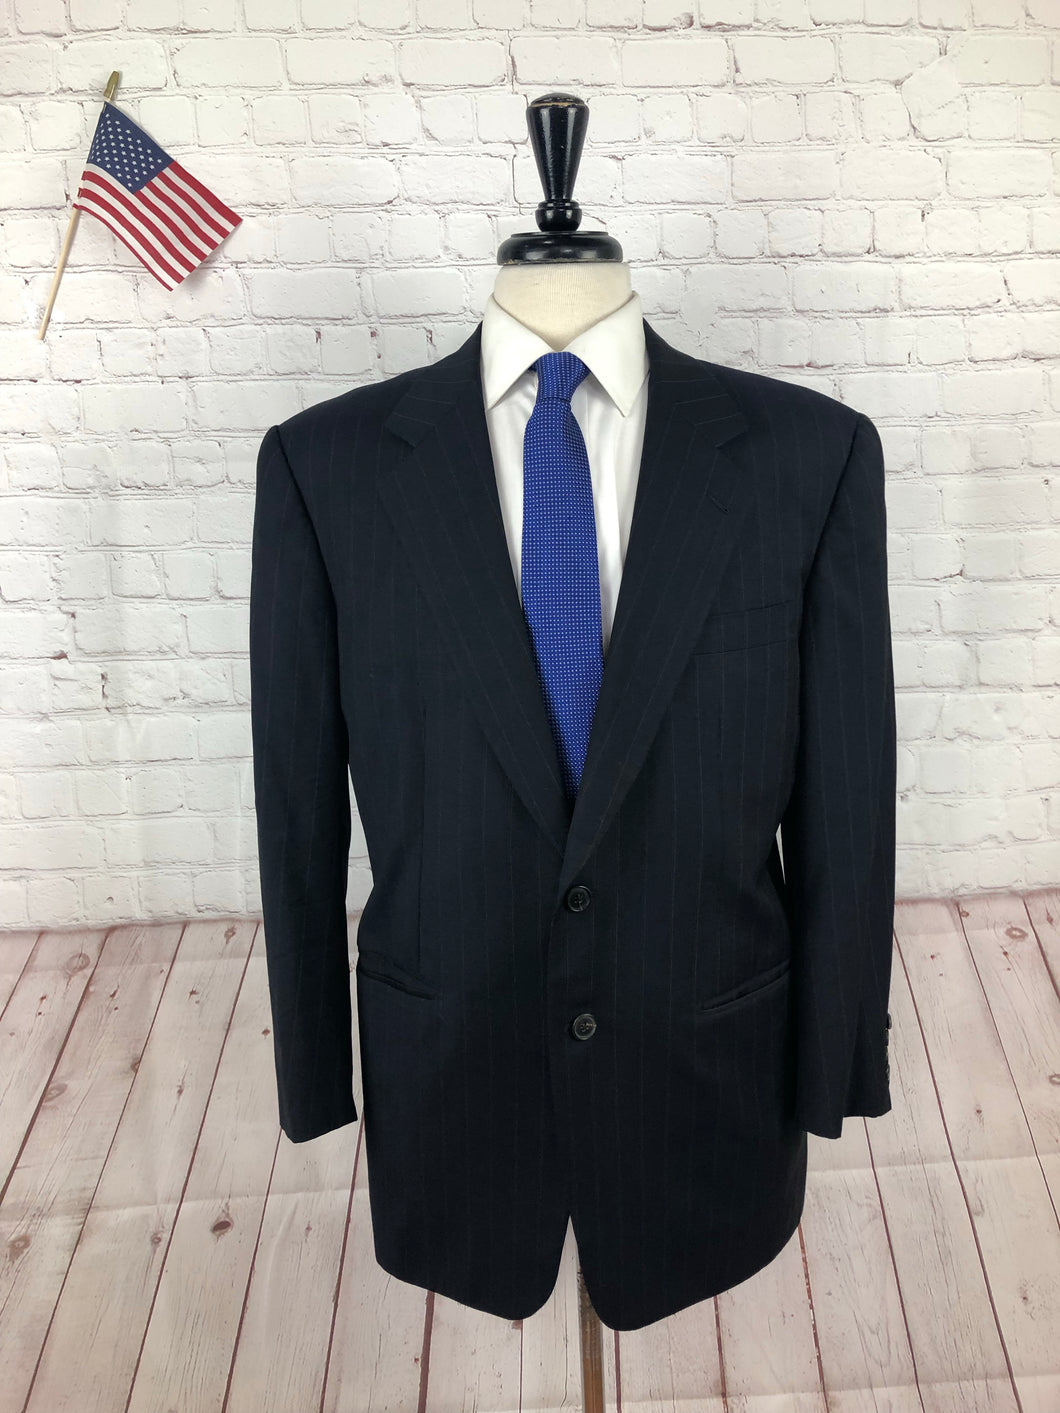 Barney's New York Men's Navy Blue Super 120's Wool Solid Blazer Sport Coat Suit Jacket 42R - SUIT CHARITY OUTLET